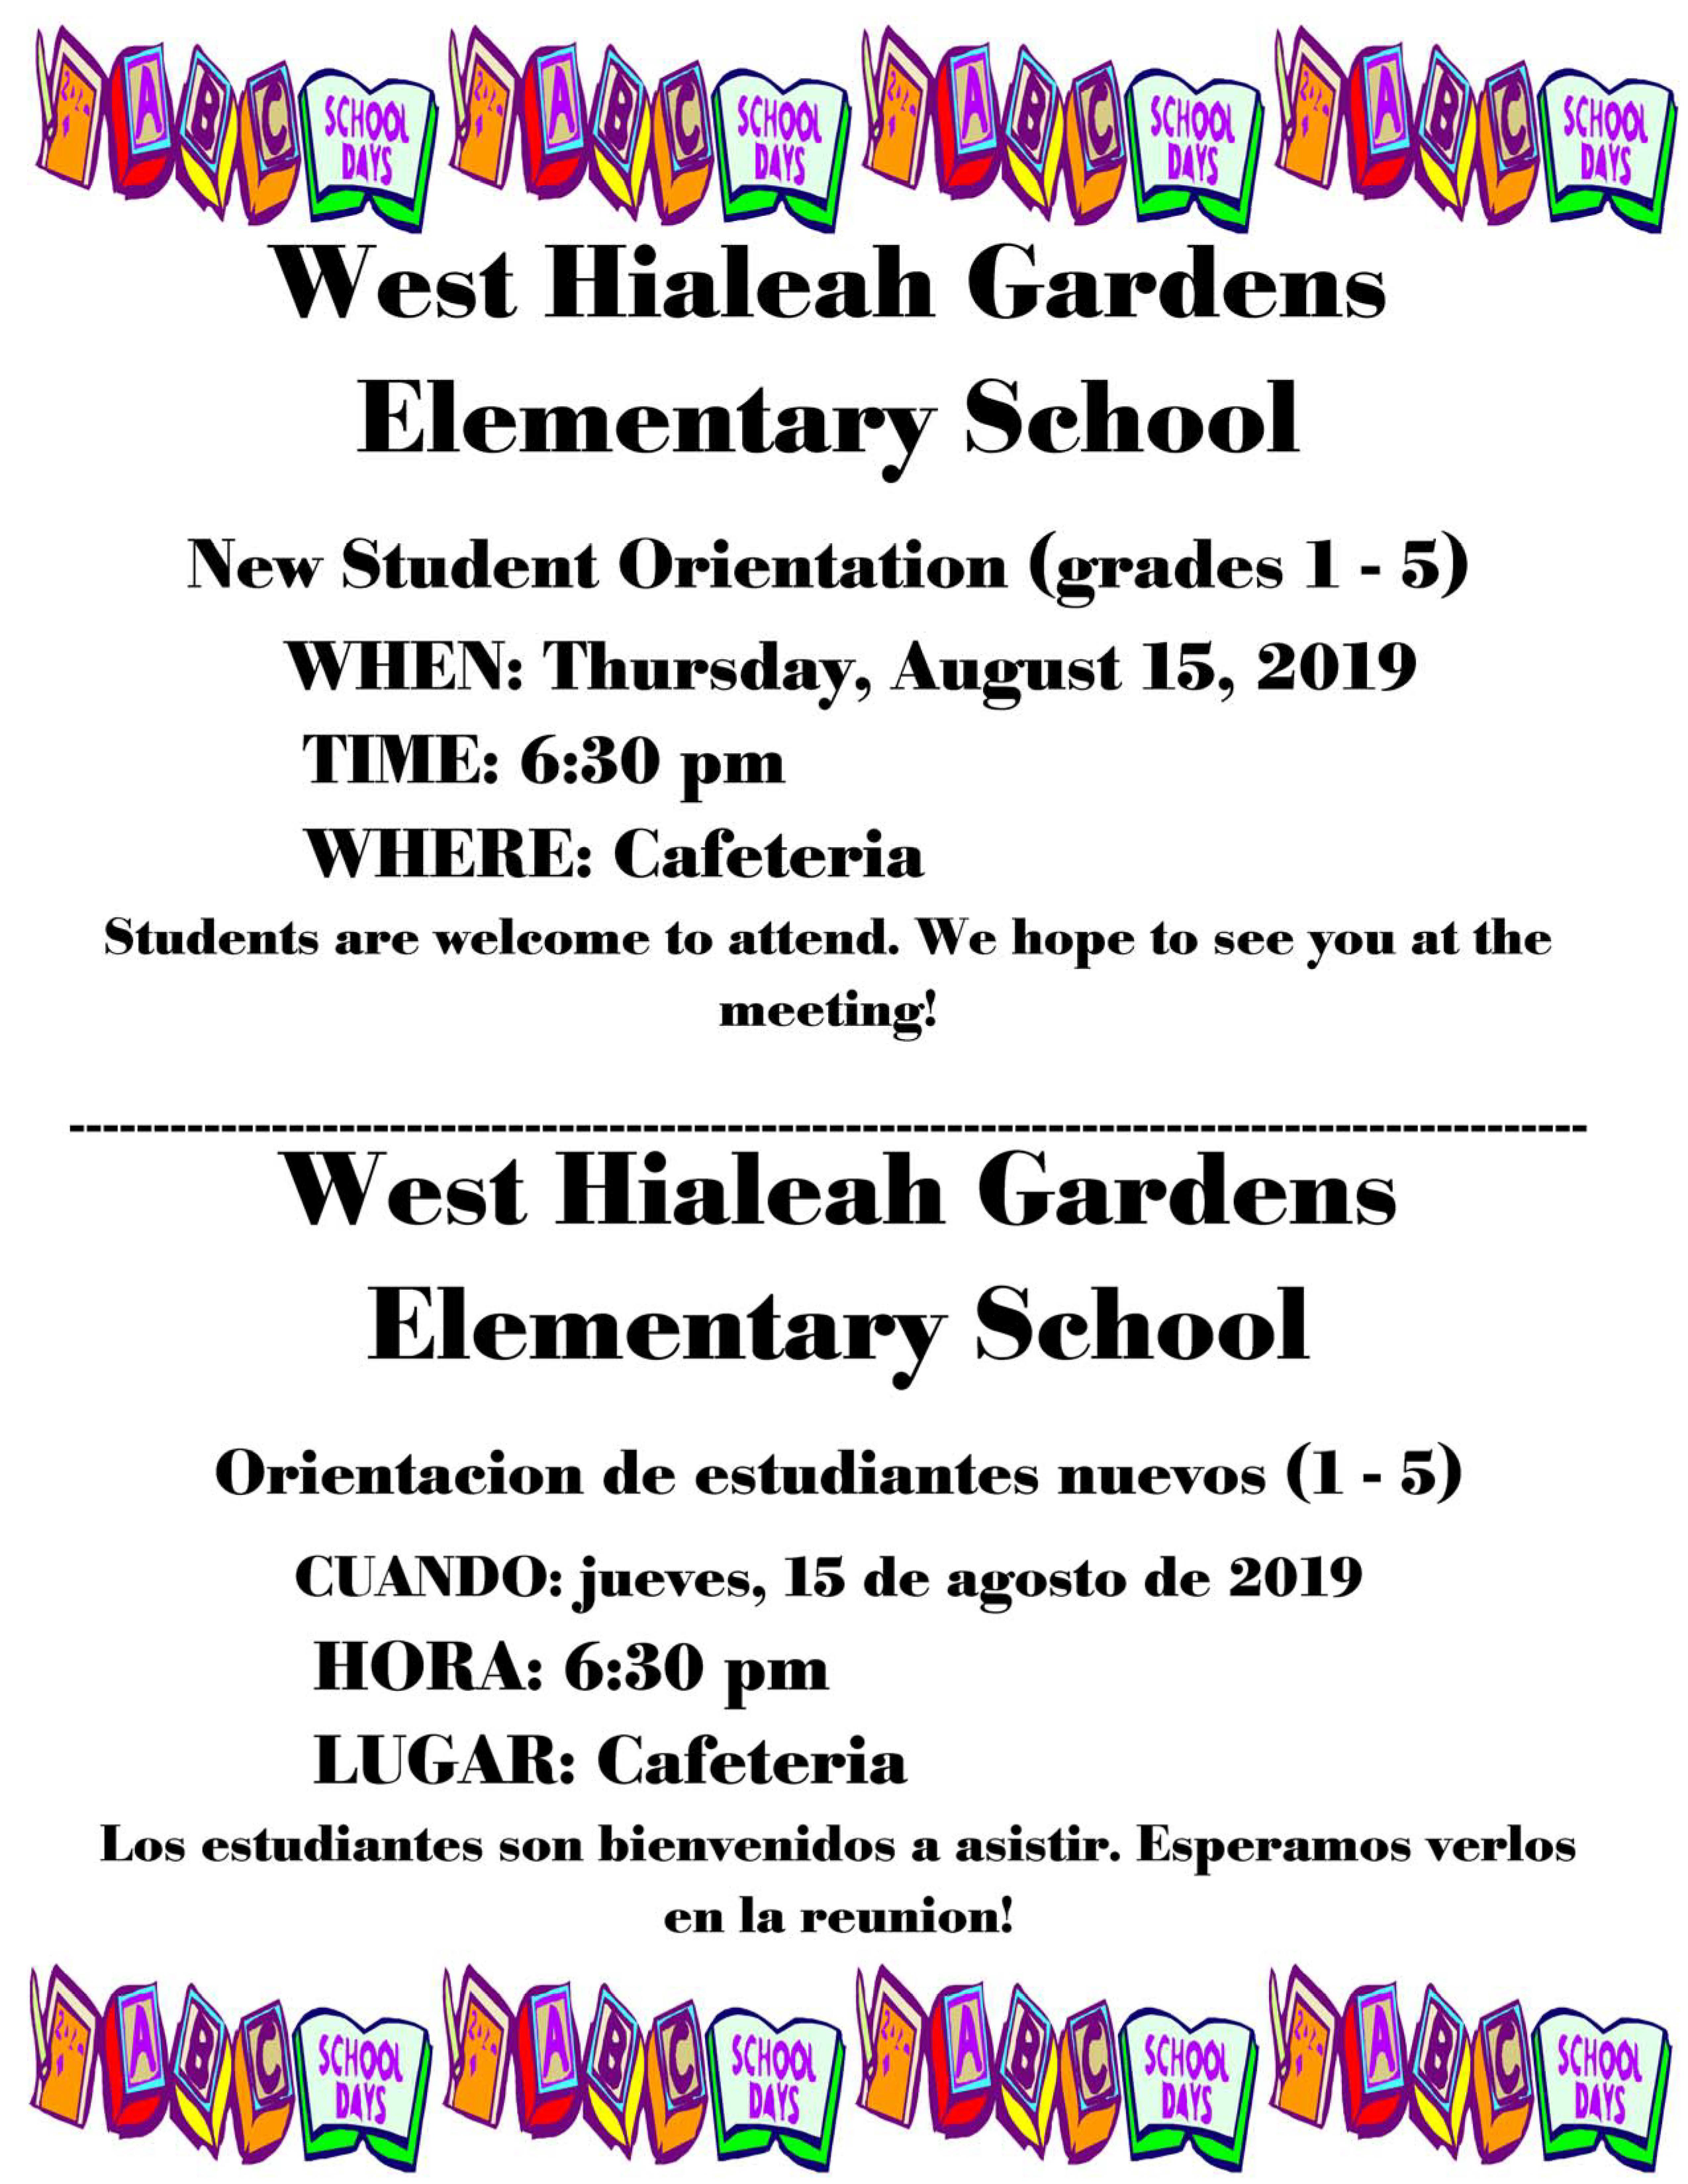 New Student Orientation (Grade 1-5) @ Cafeteria